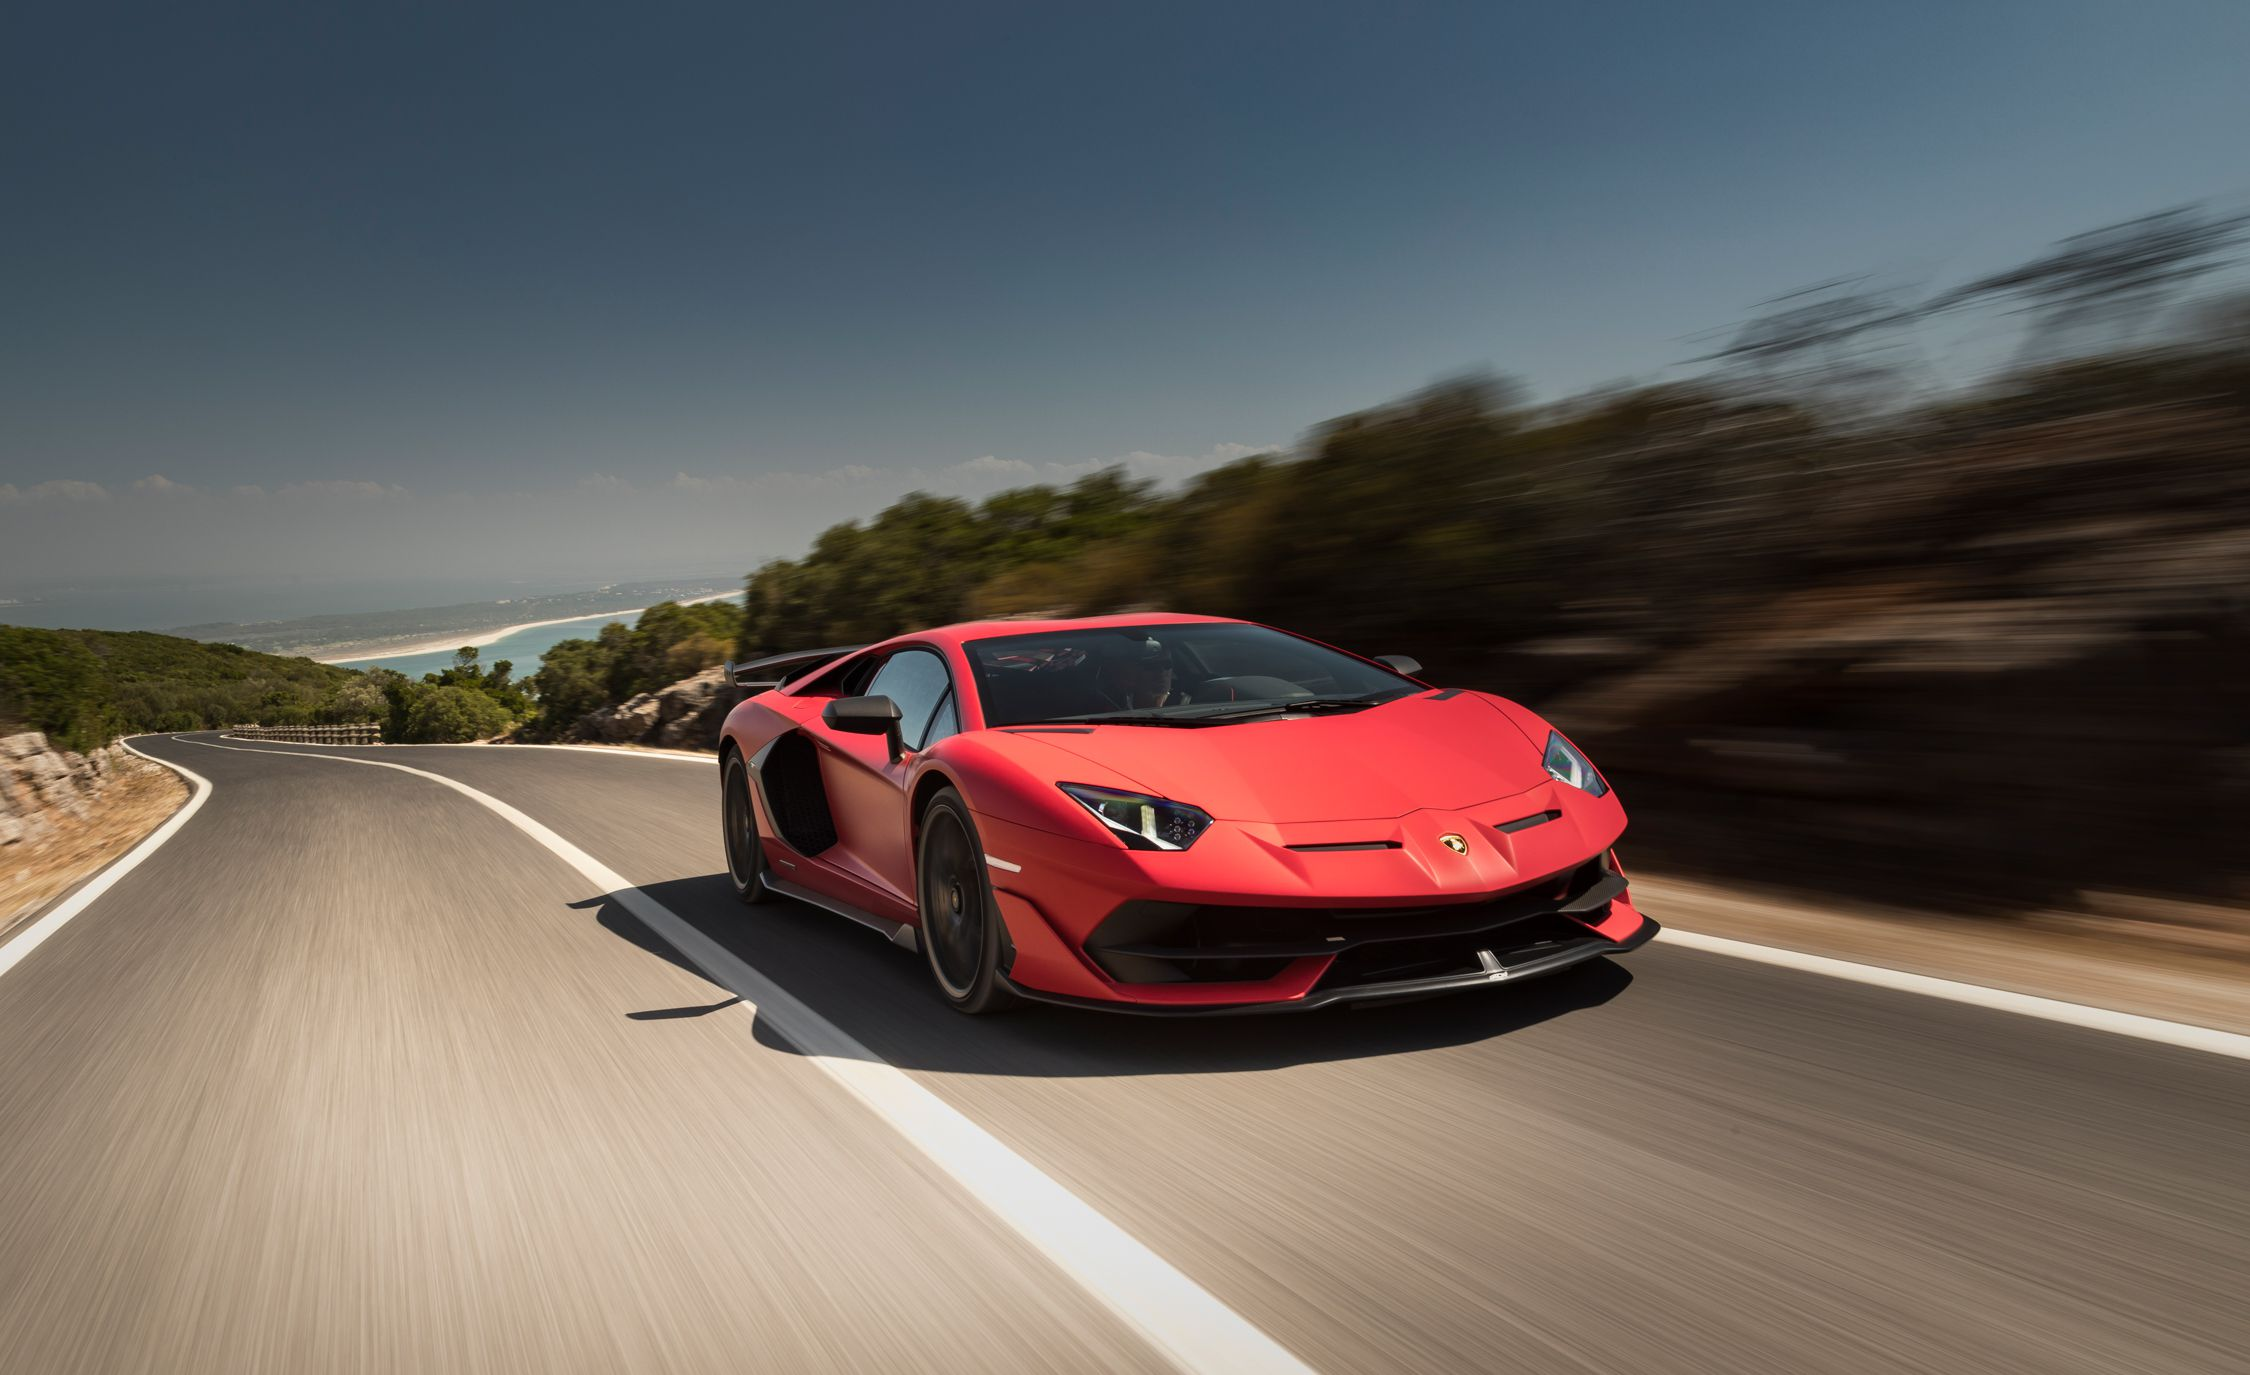 2019 Lamborghini Aventador Wallpaper Lamborghini Cars Review